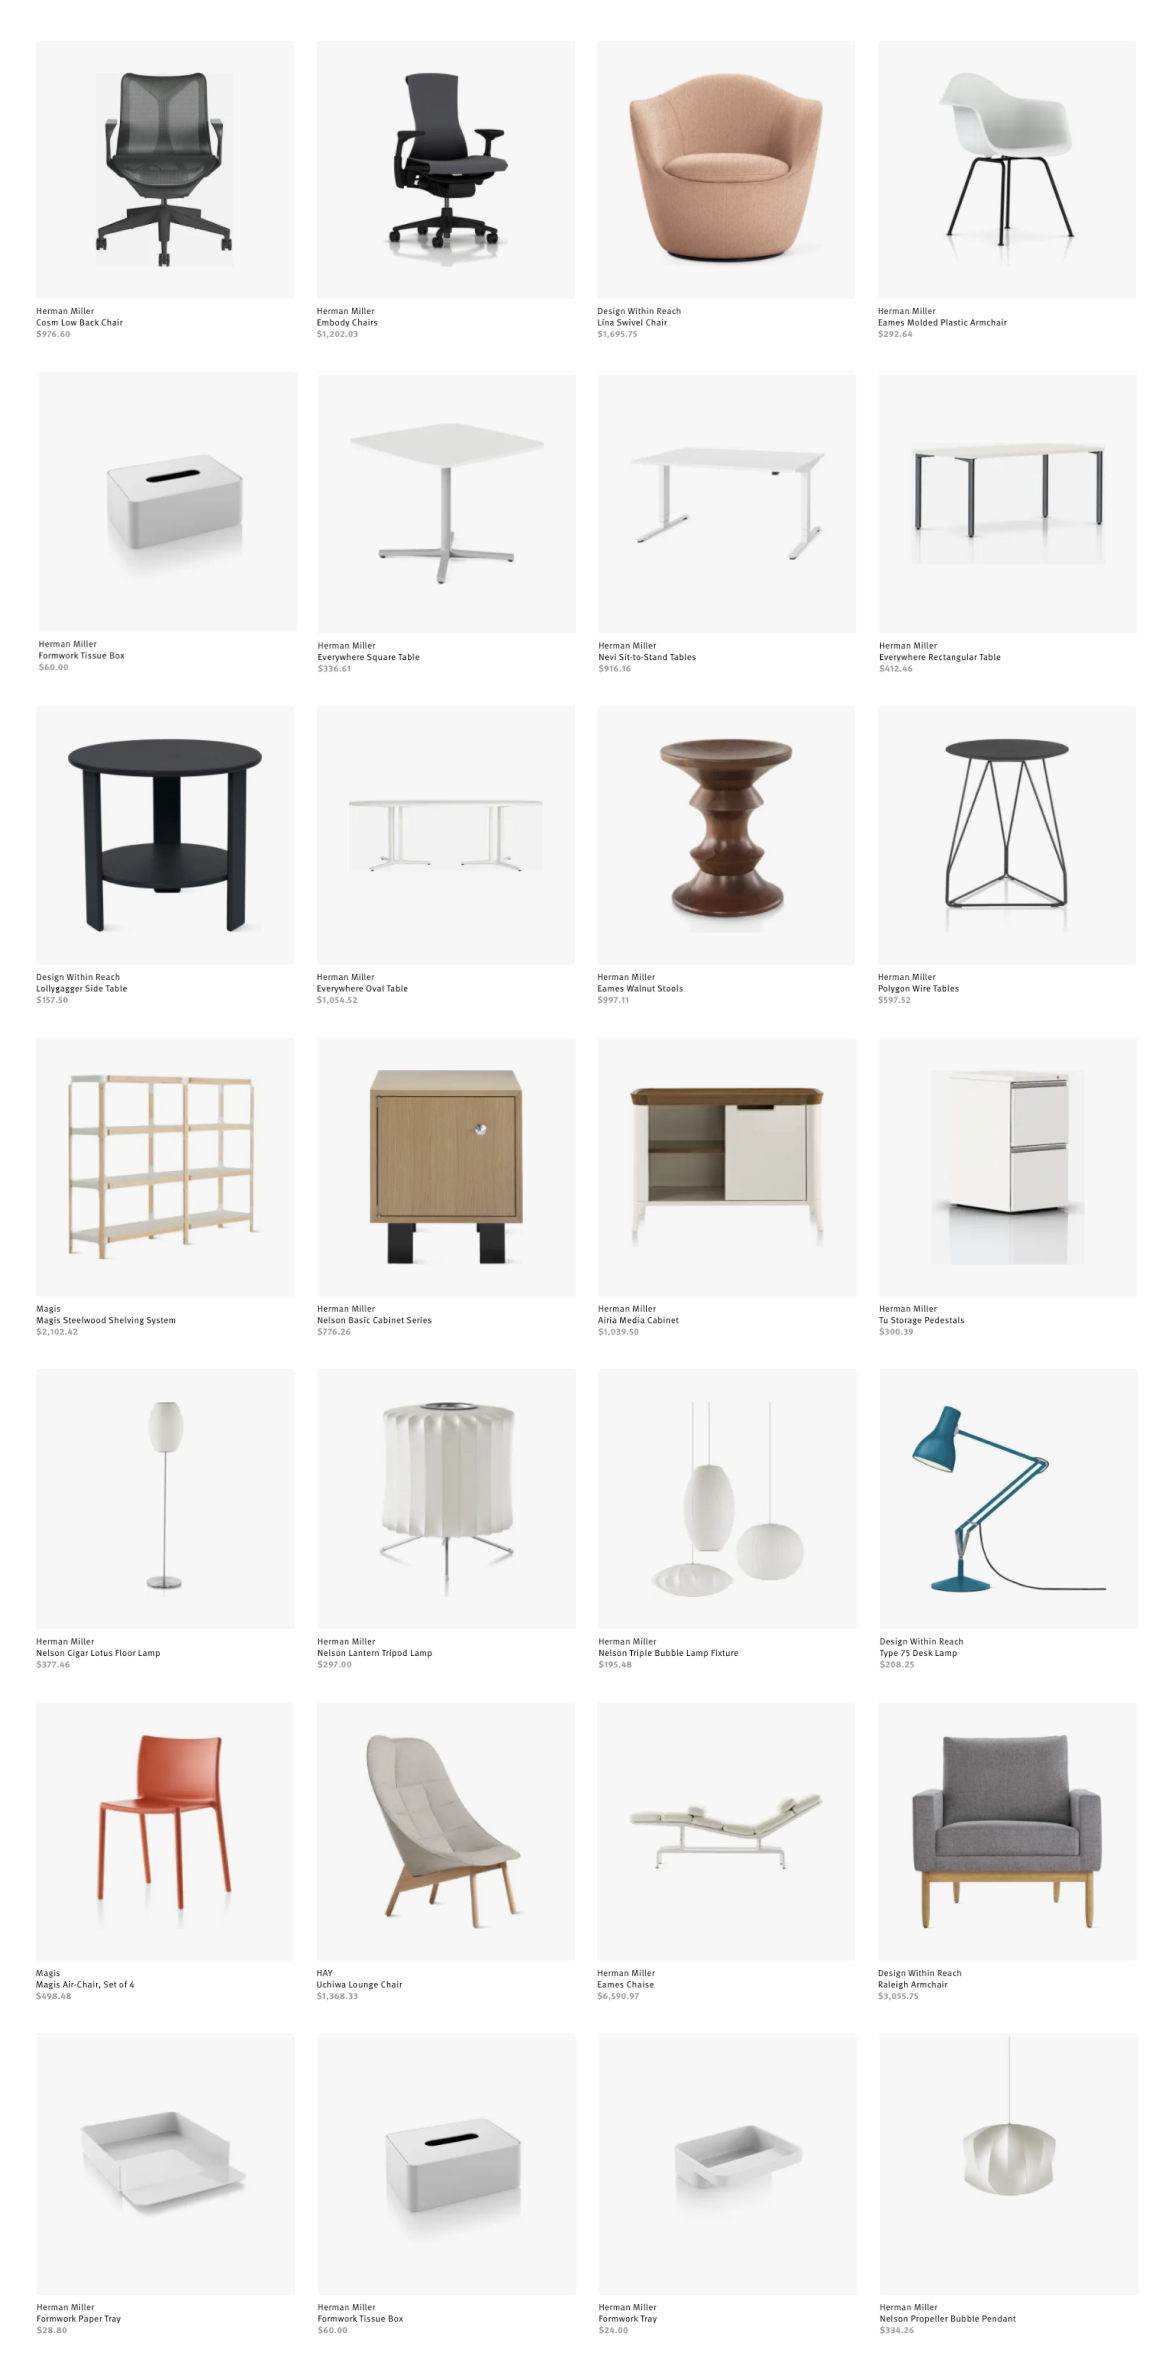 A grid of Herman Miller Group products